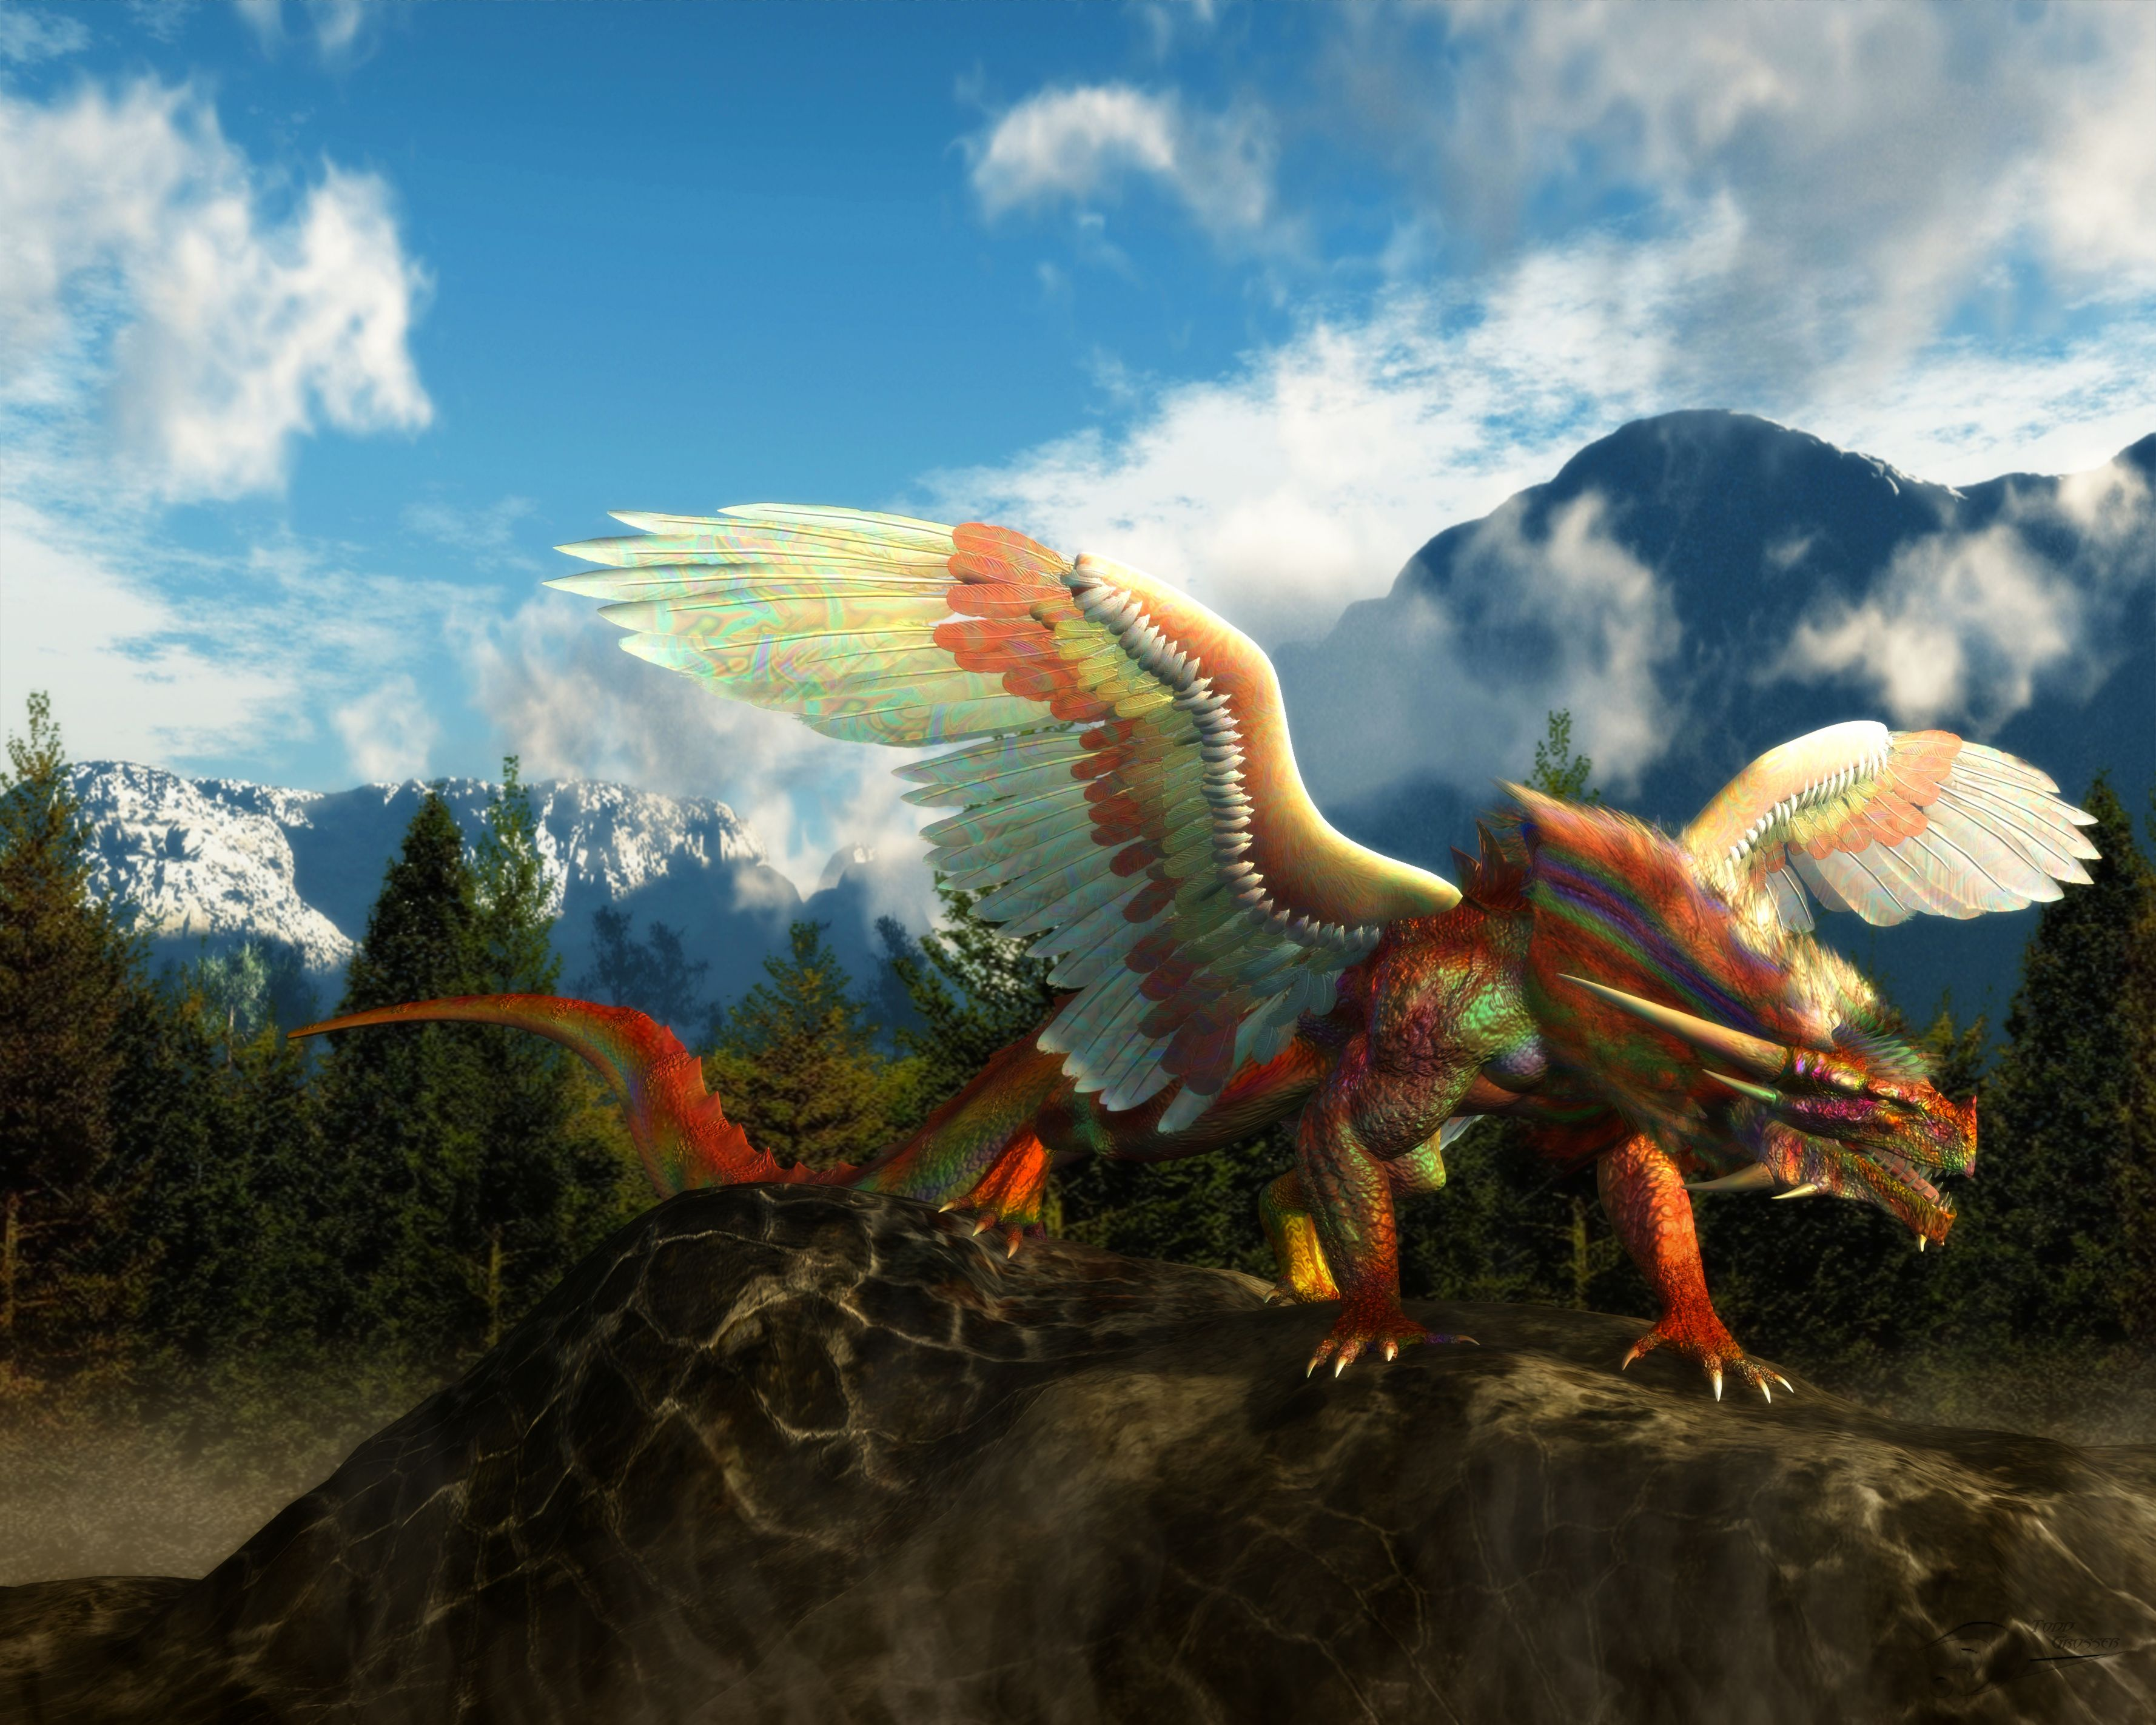 Rainbow Dragon Full HD Wallpaper And Background